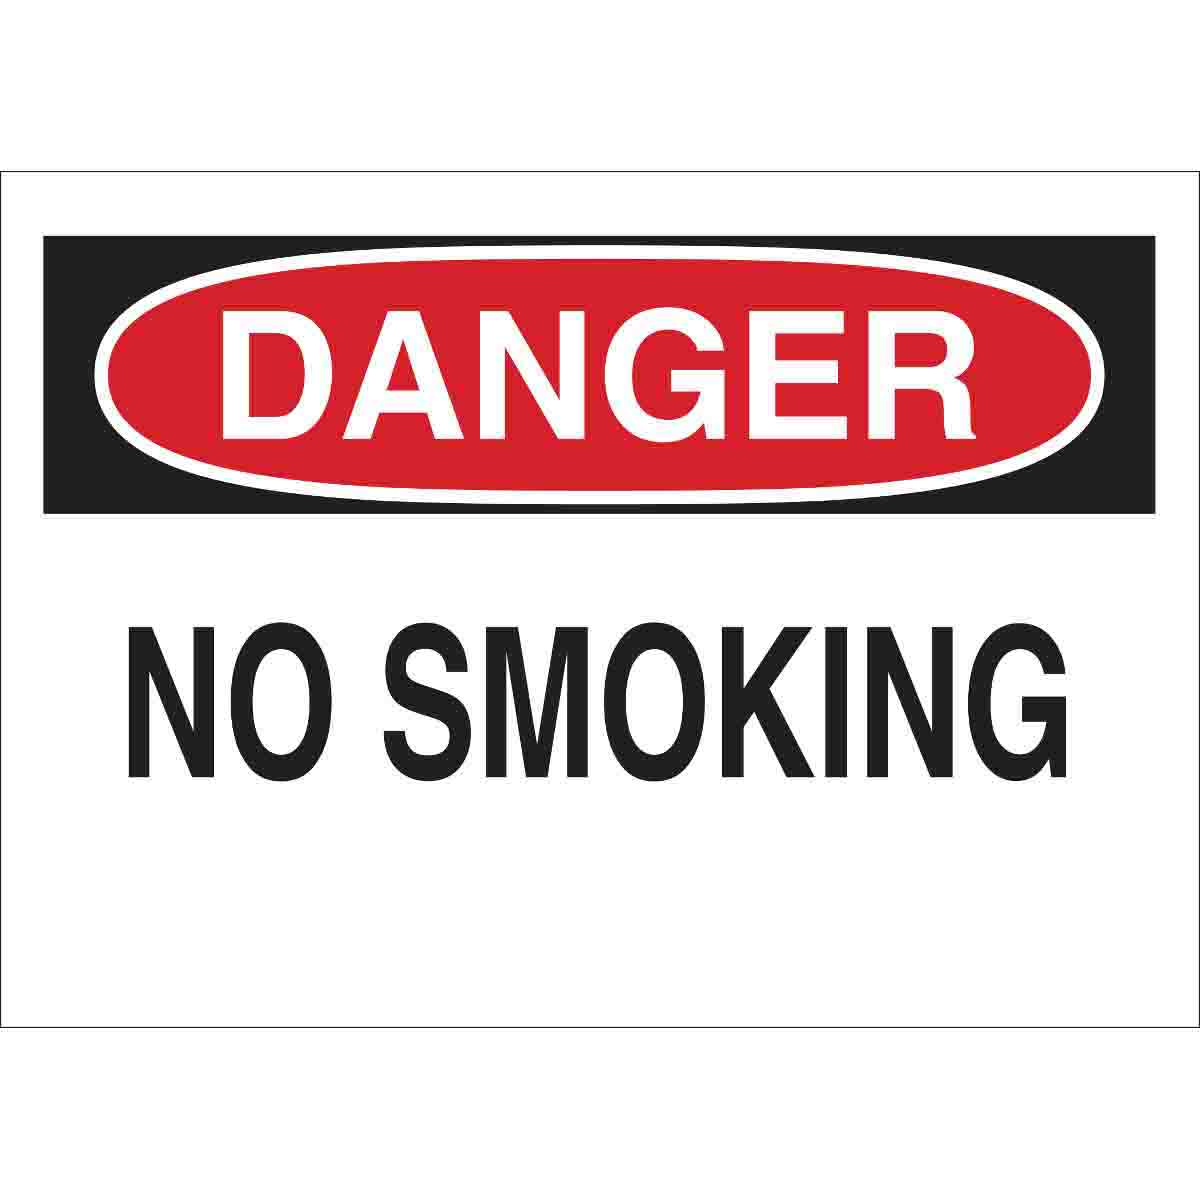 Brady® 25077 Rectangle No Smoking Sign, DANGER, 10 in H x 14 in W, Black/Red on white, B-401 Plastic, Surface Mounting